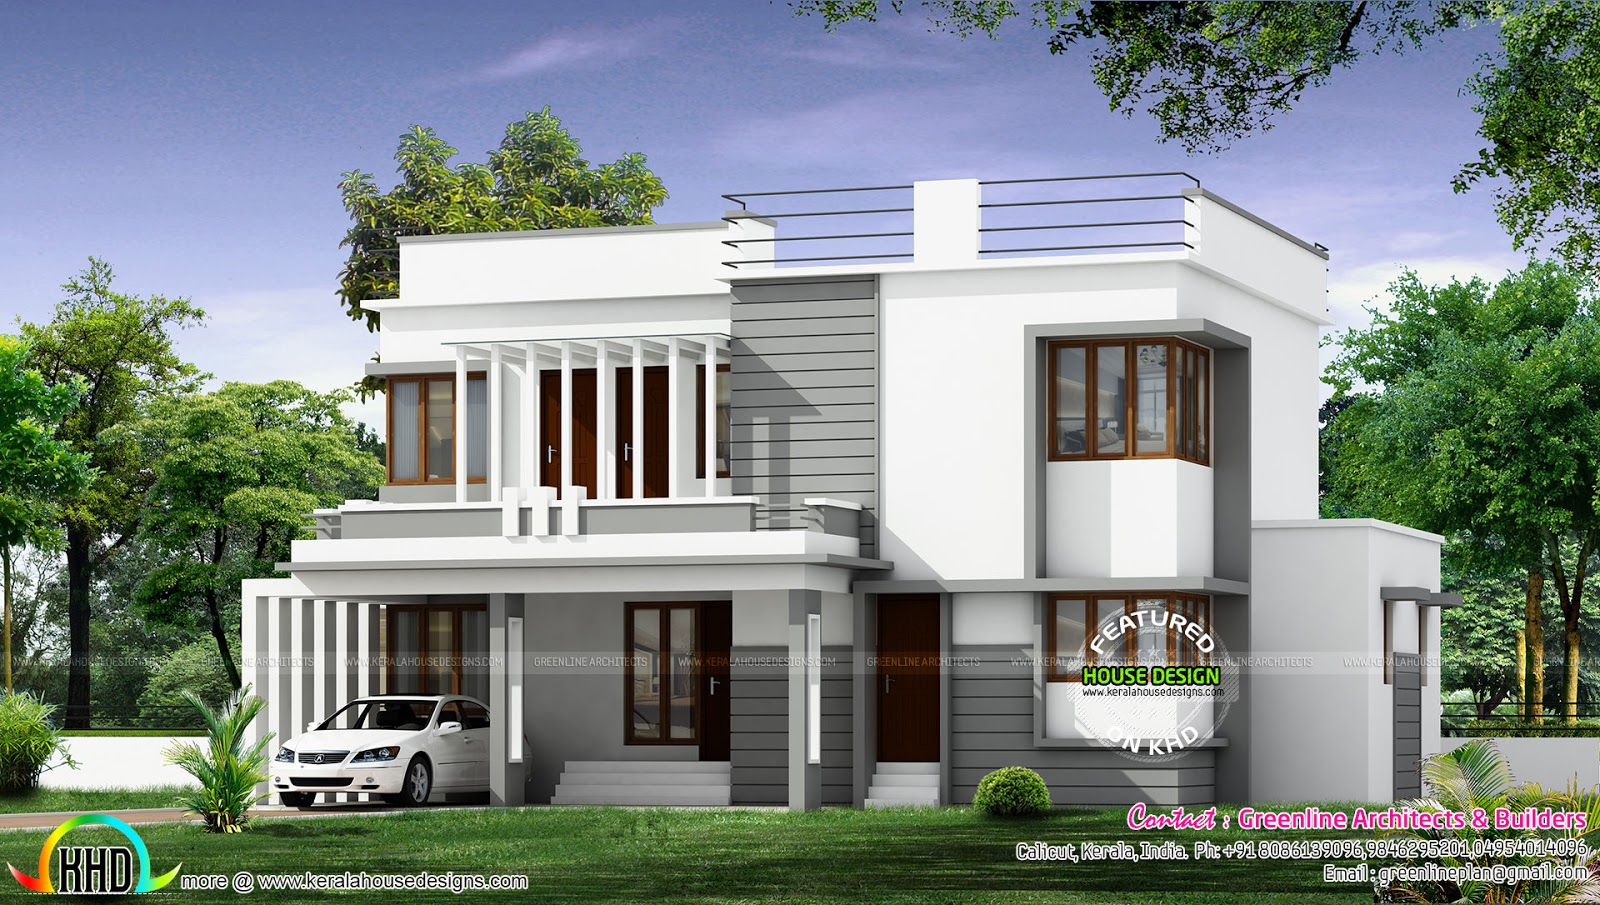 New modern house architecture kerala home design and for New design house image